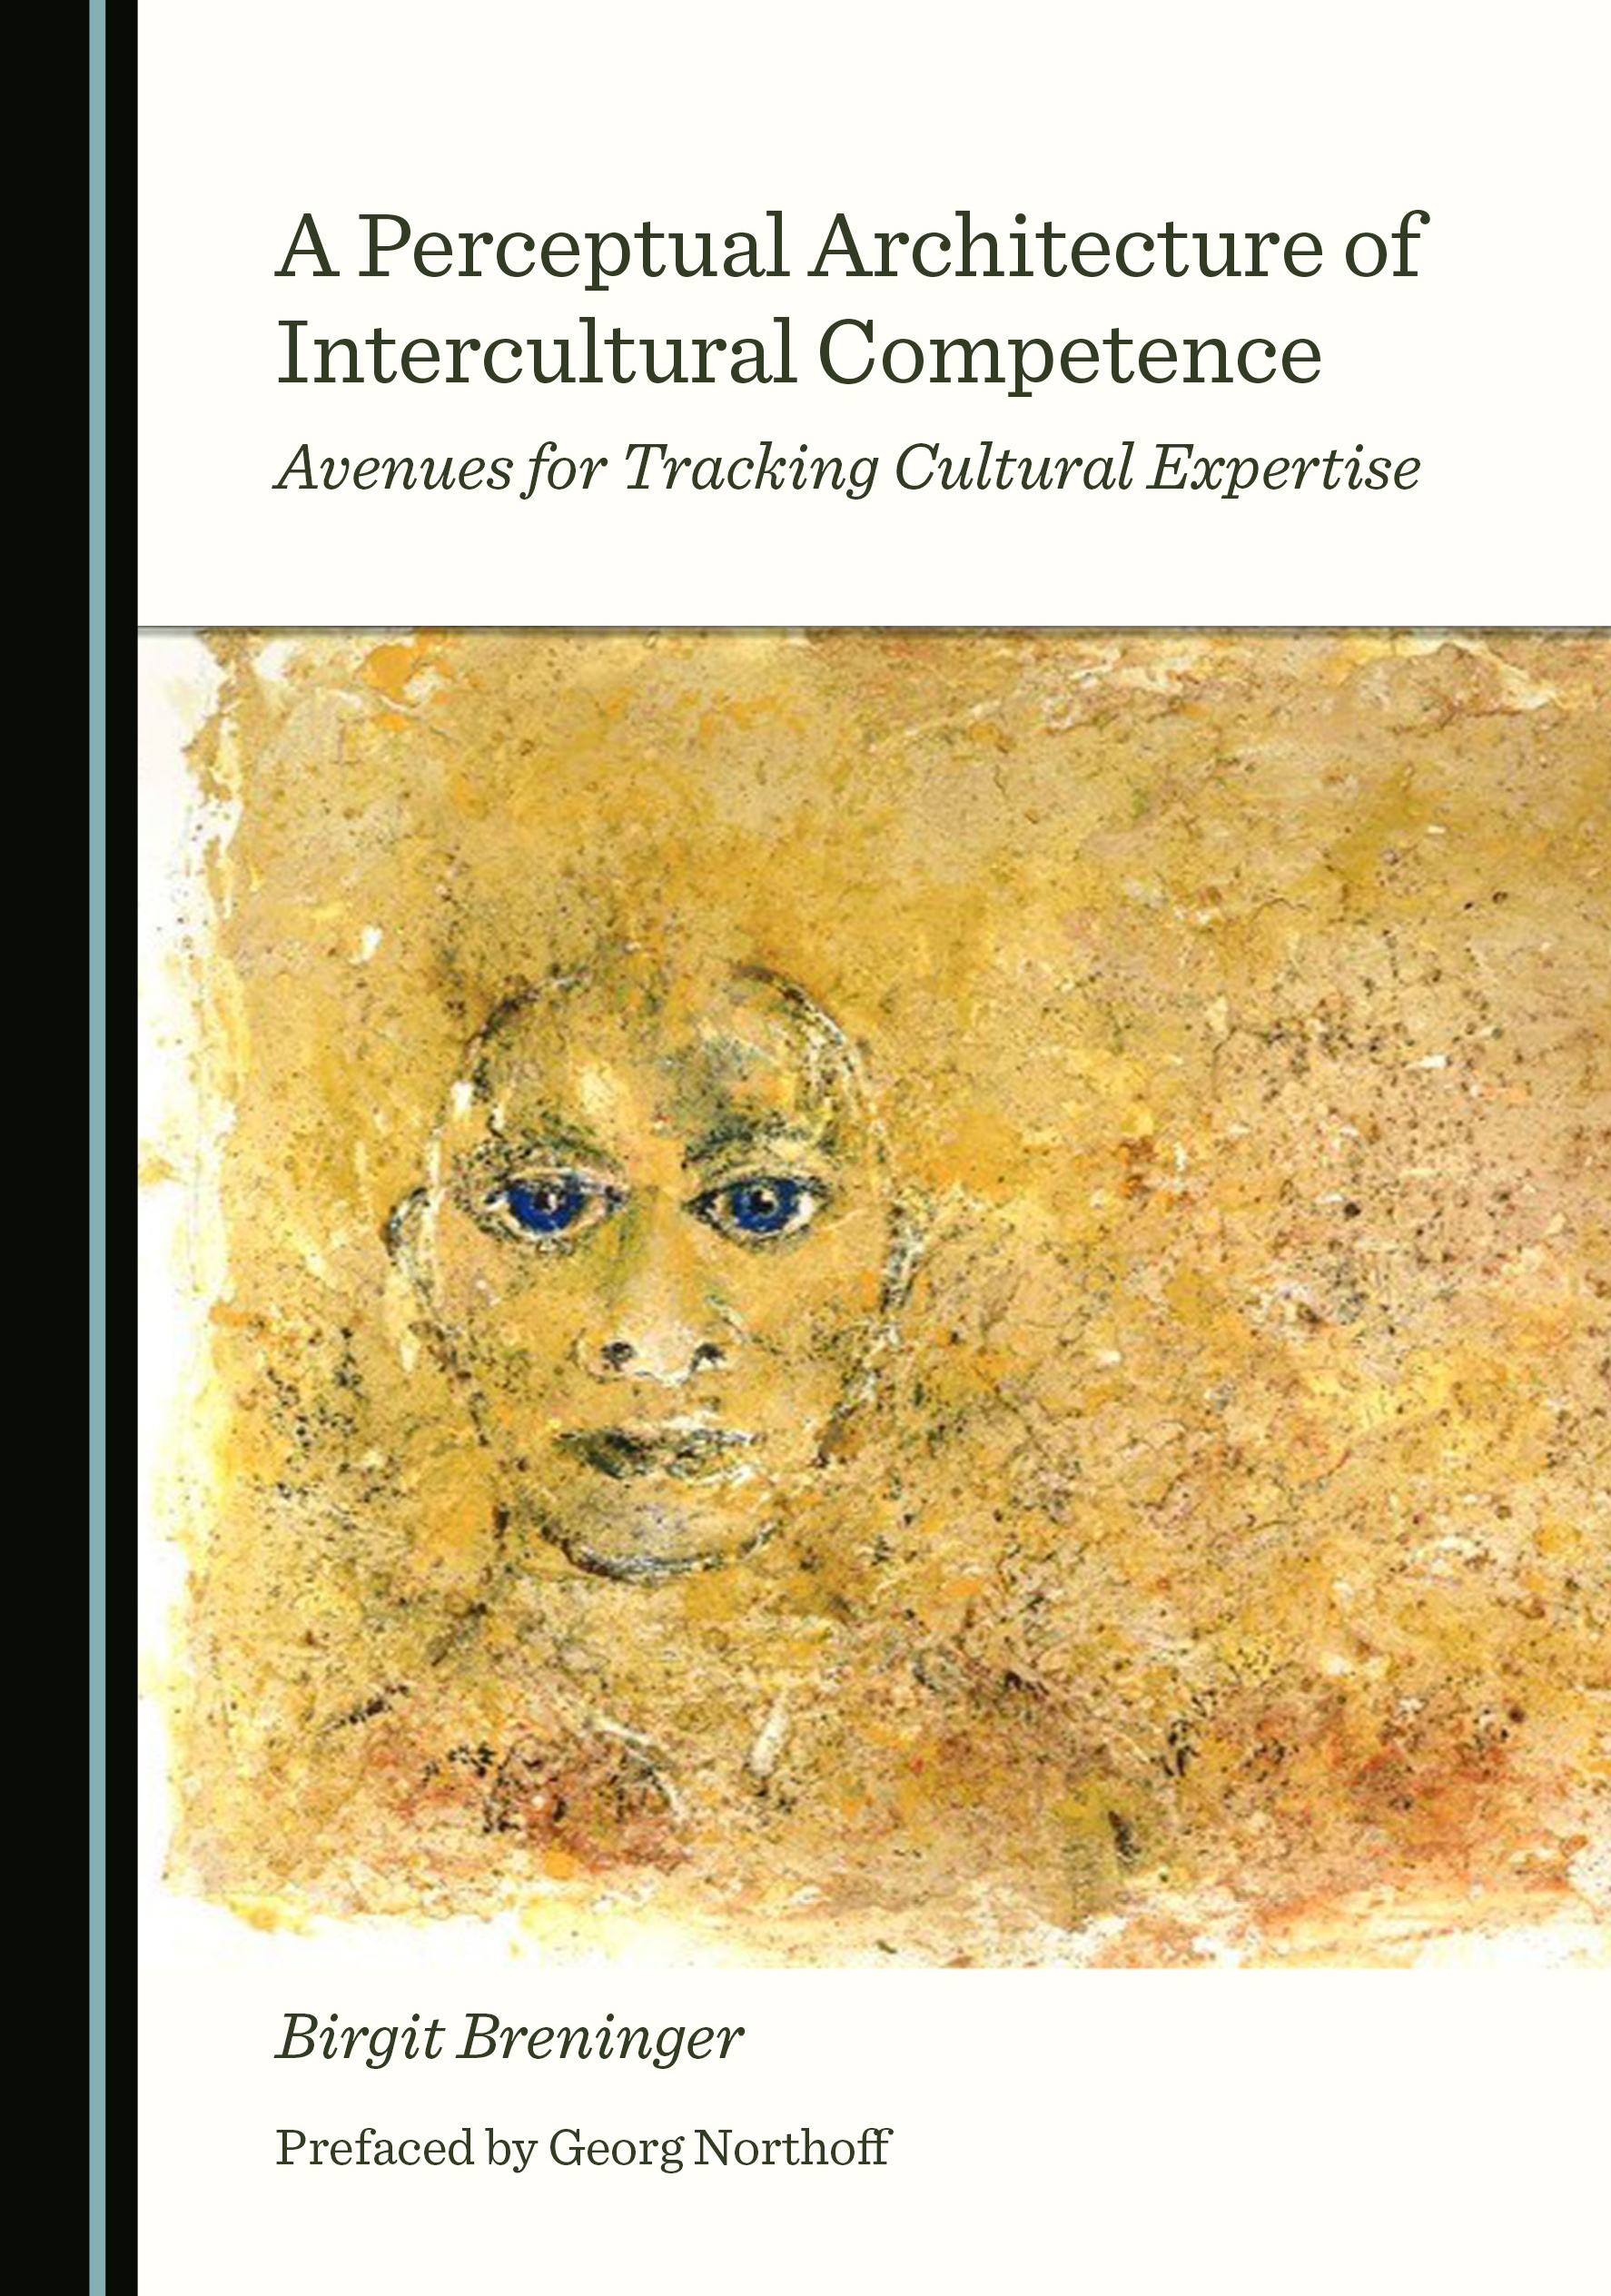 A Perceptual Architecture of Intercultural Competence: Avenues for Tracking Cultural Expertise